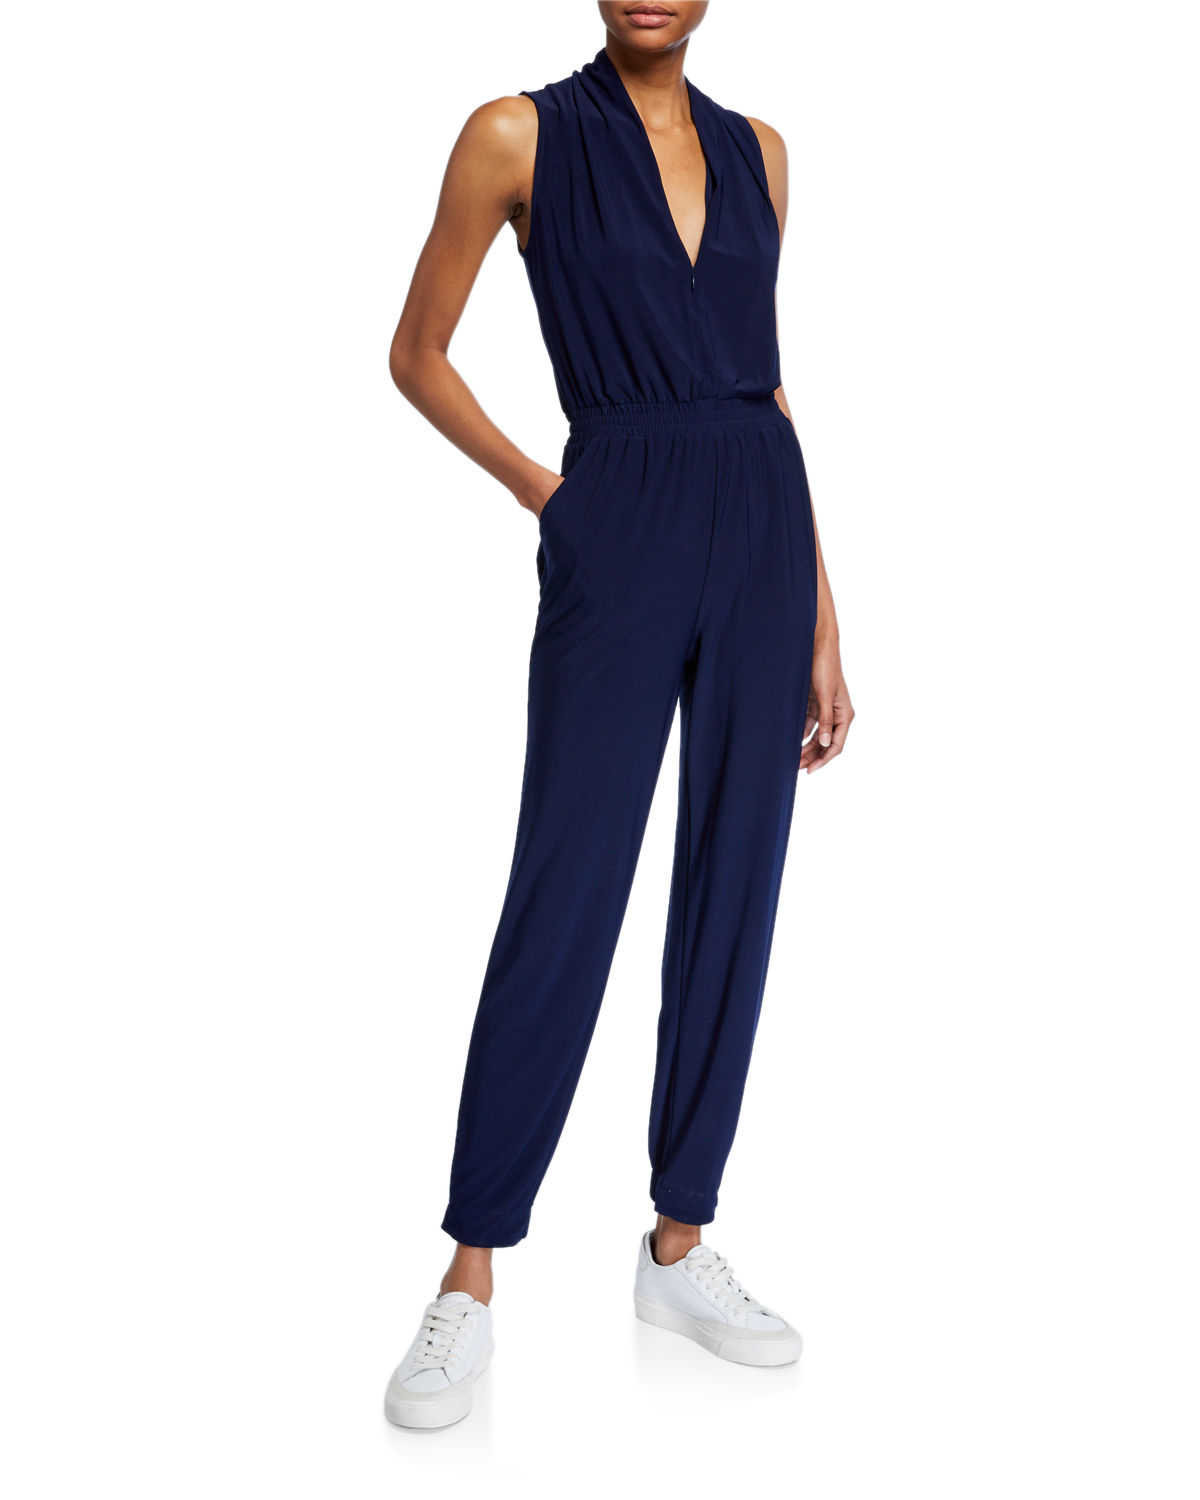 Laundry By Shelli Segal Suits ATHLEISURE JERSEY JUMPSUIT